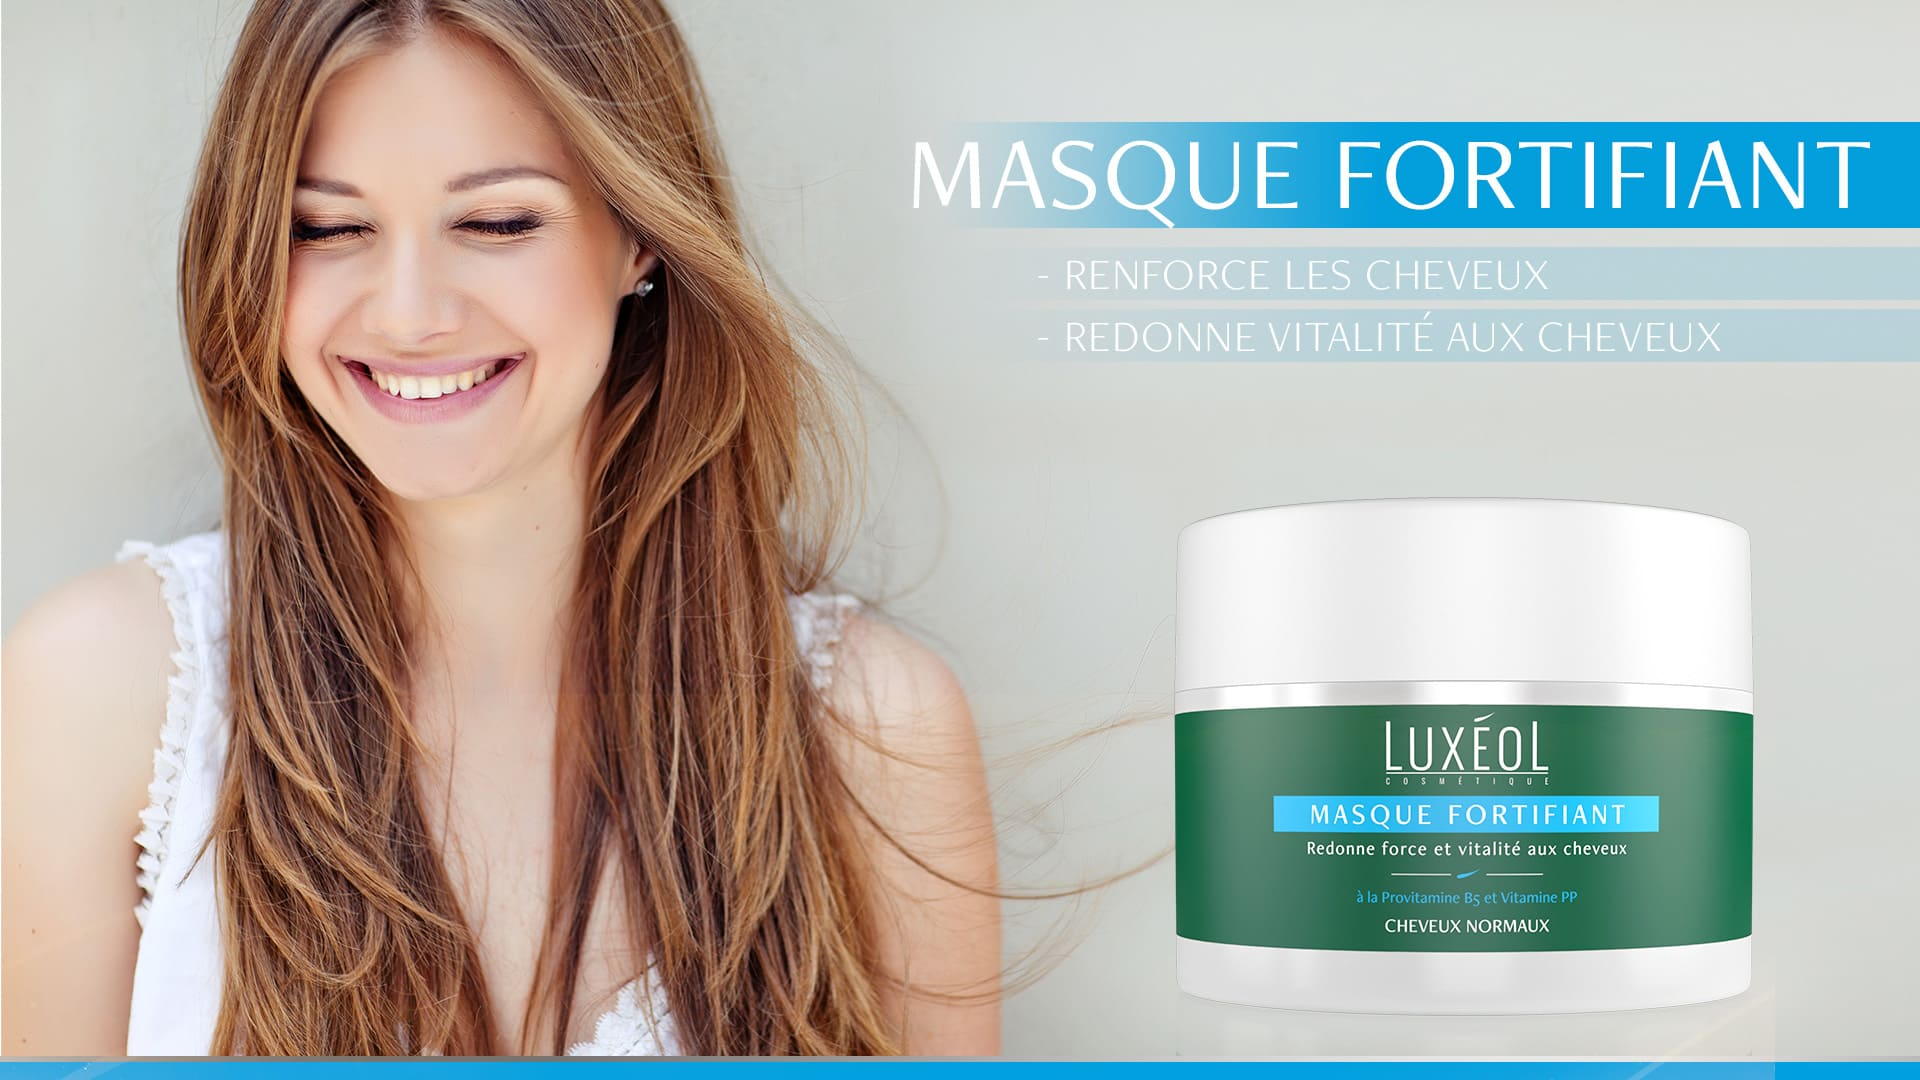 Luxéol Masque fortifiant